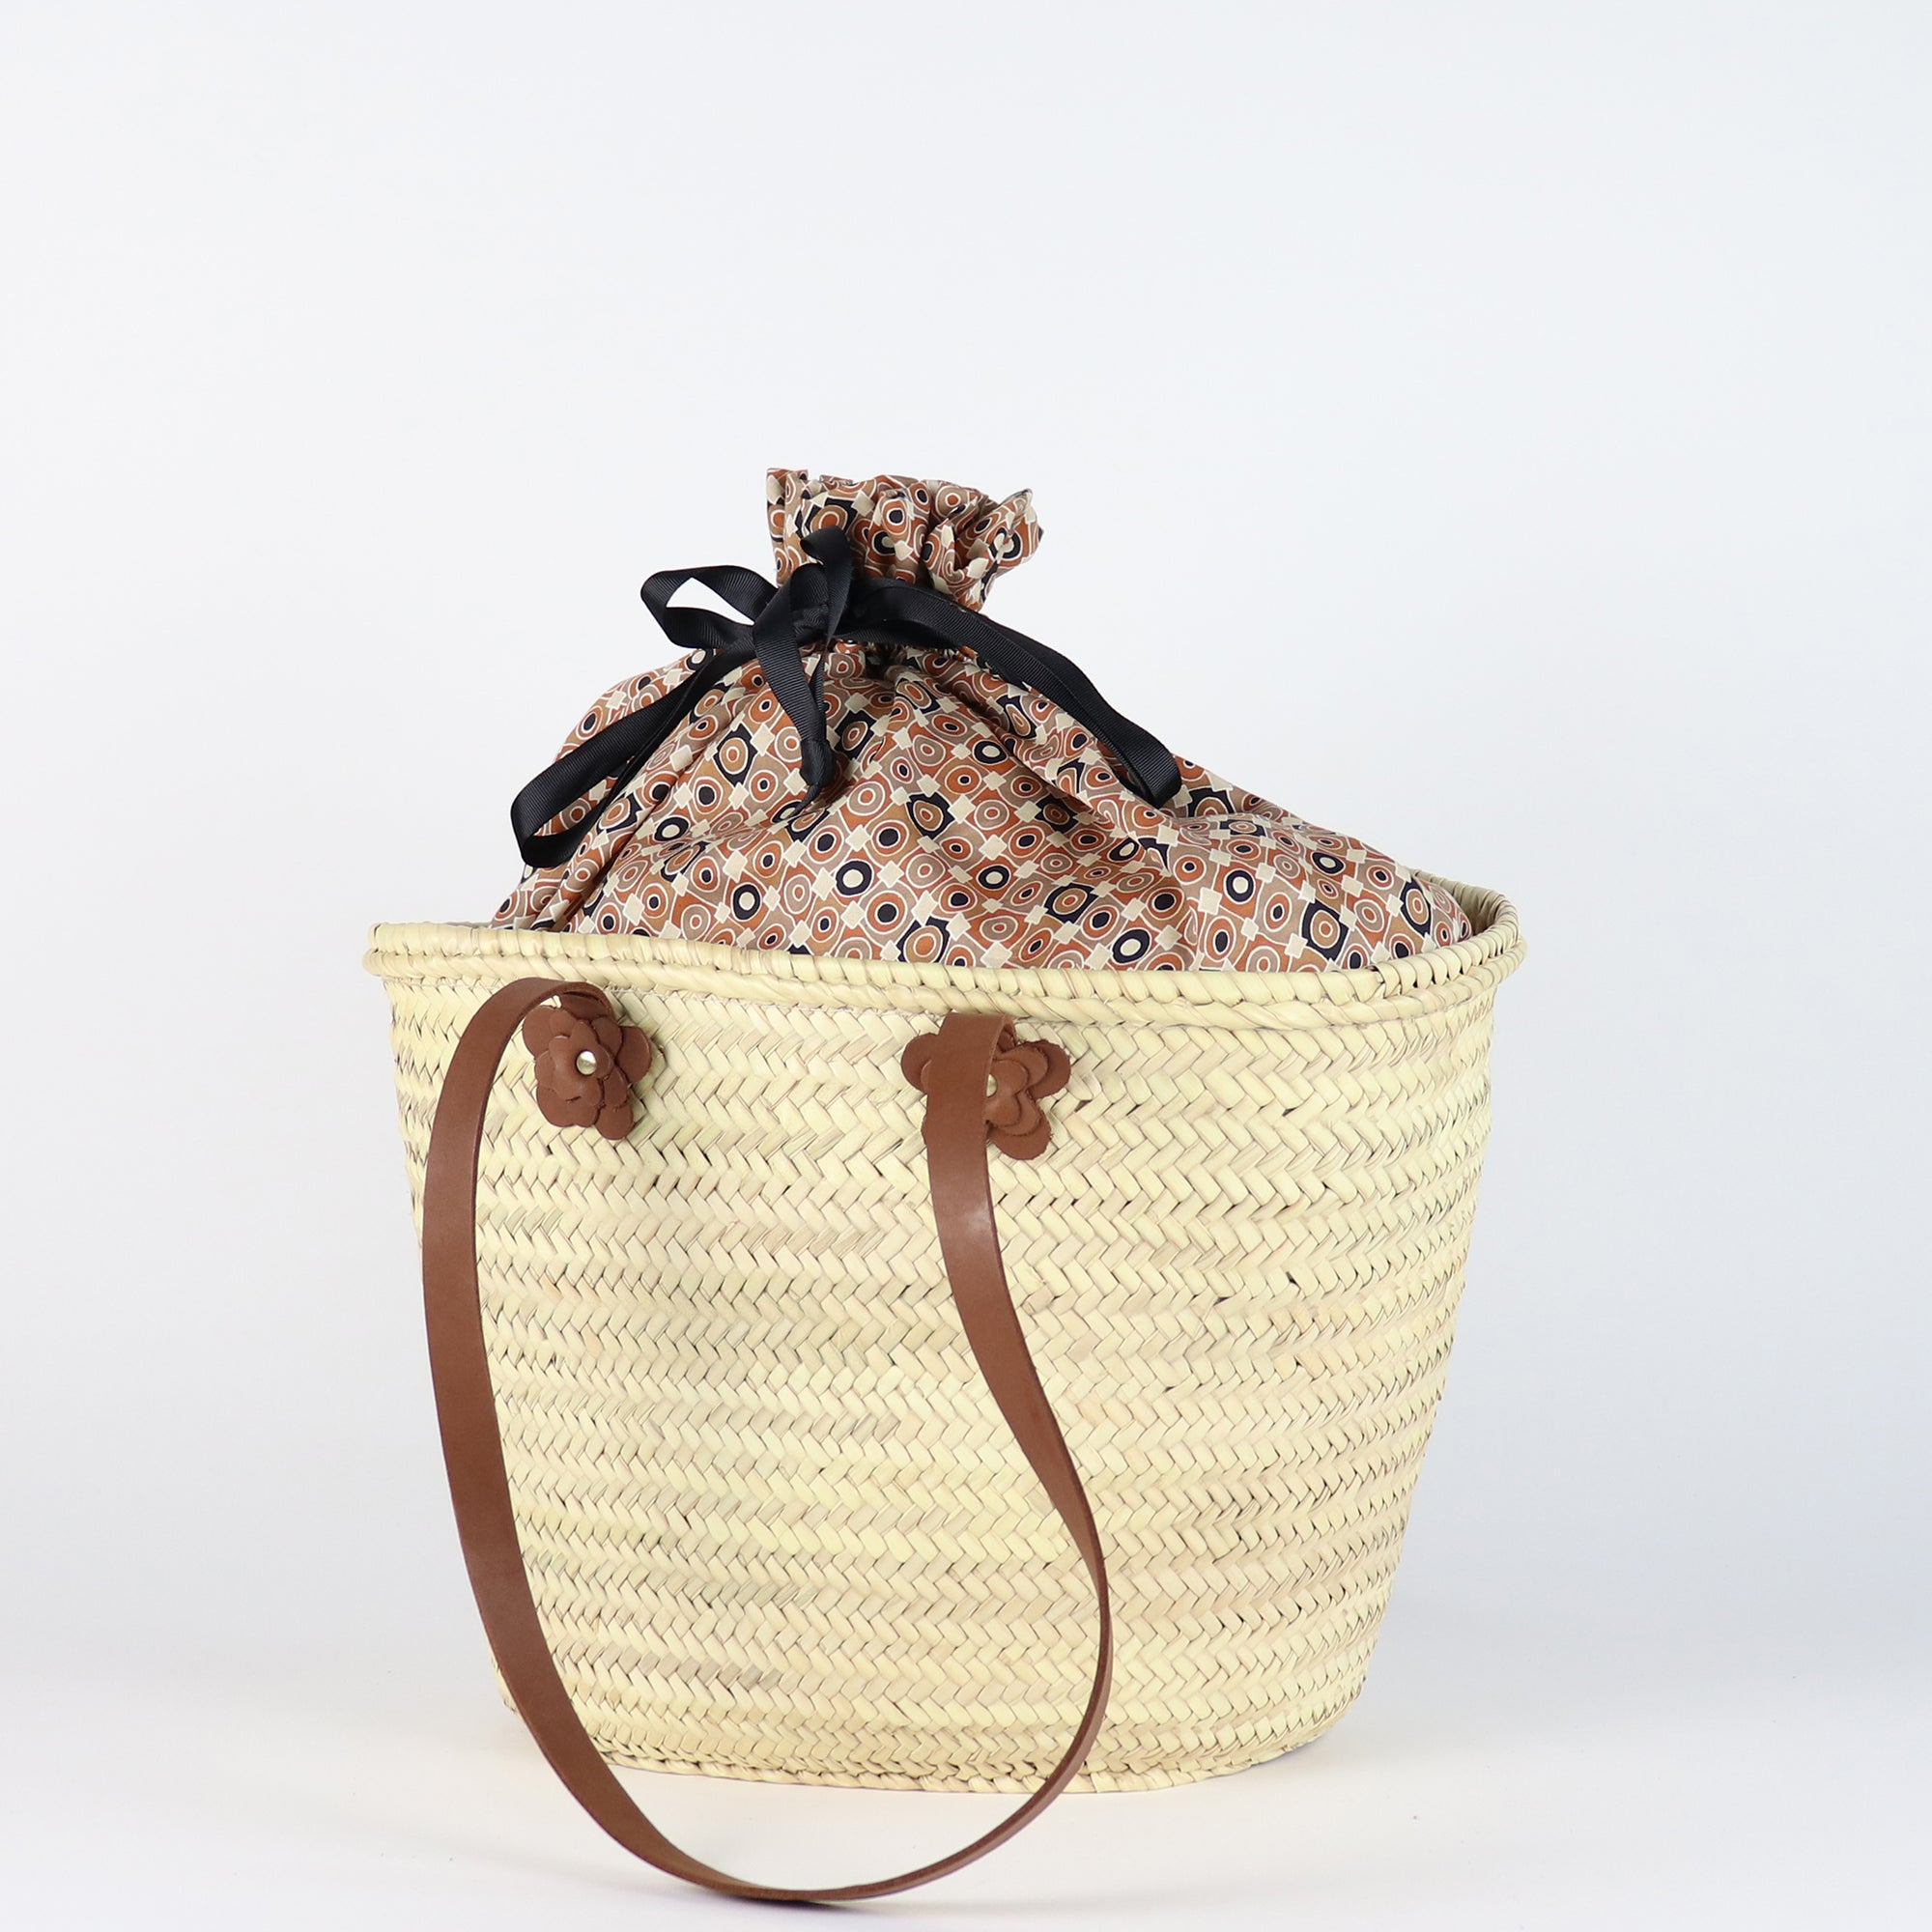 Puerto Rico French Basket